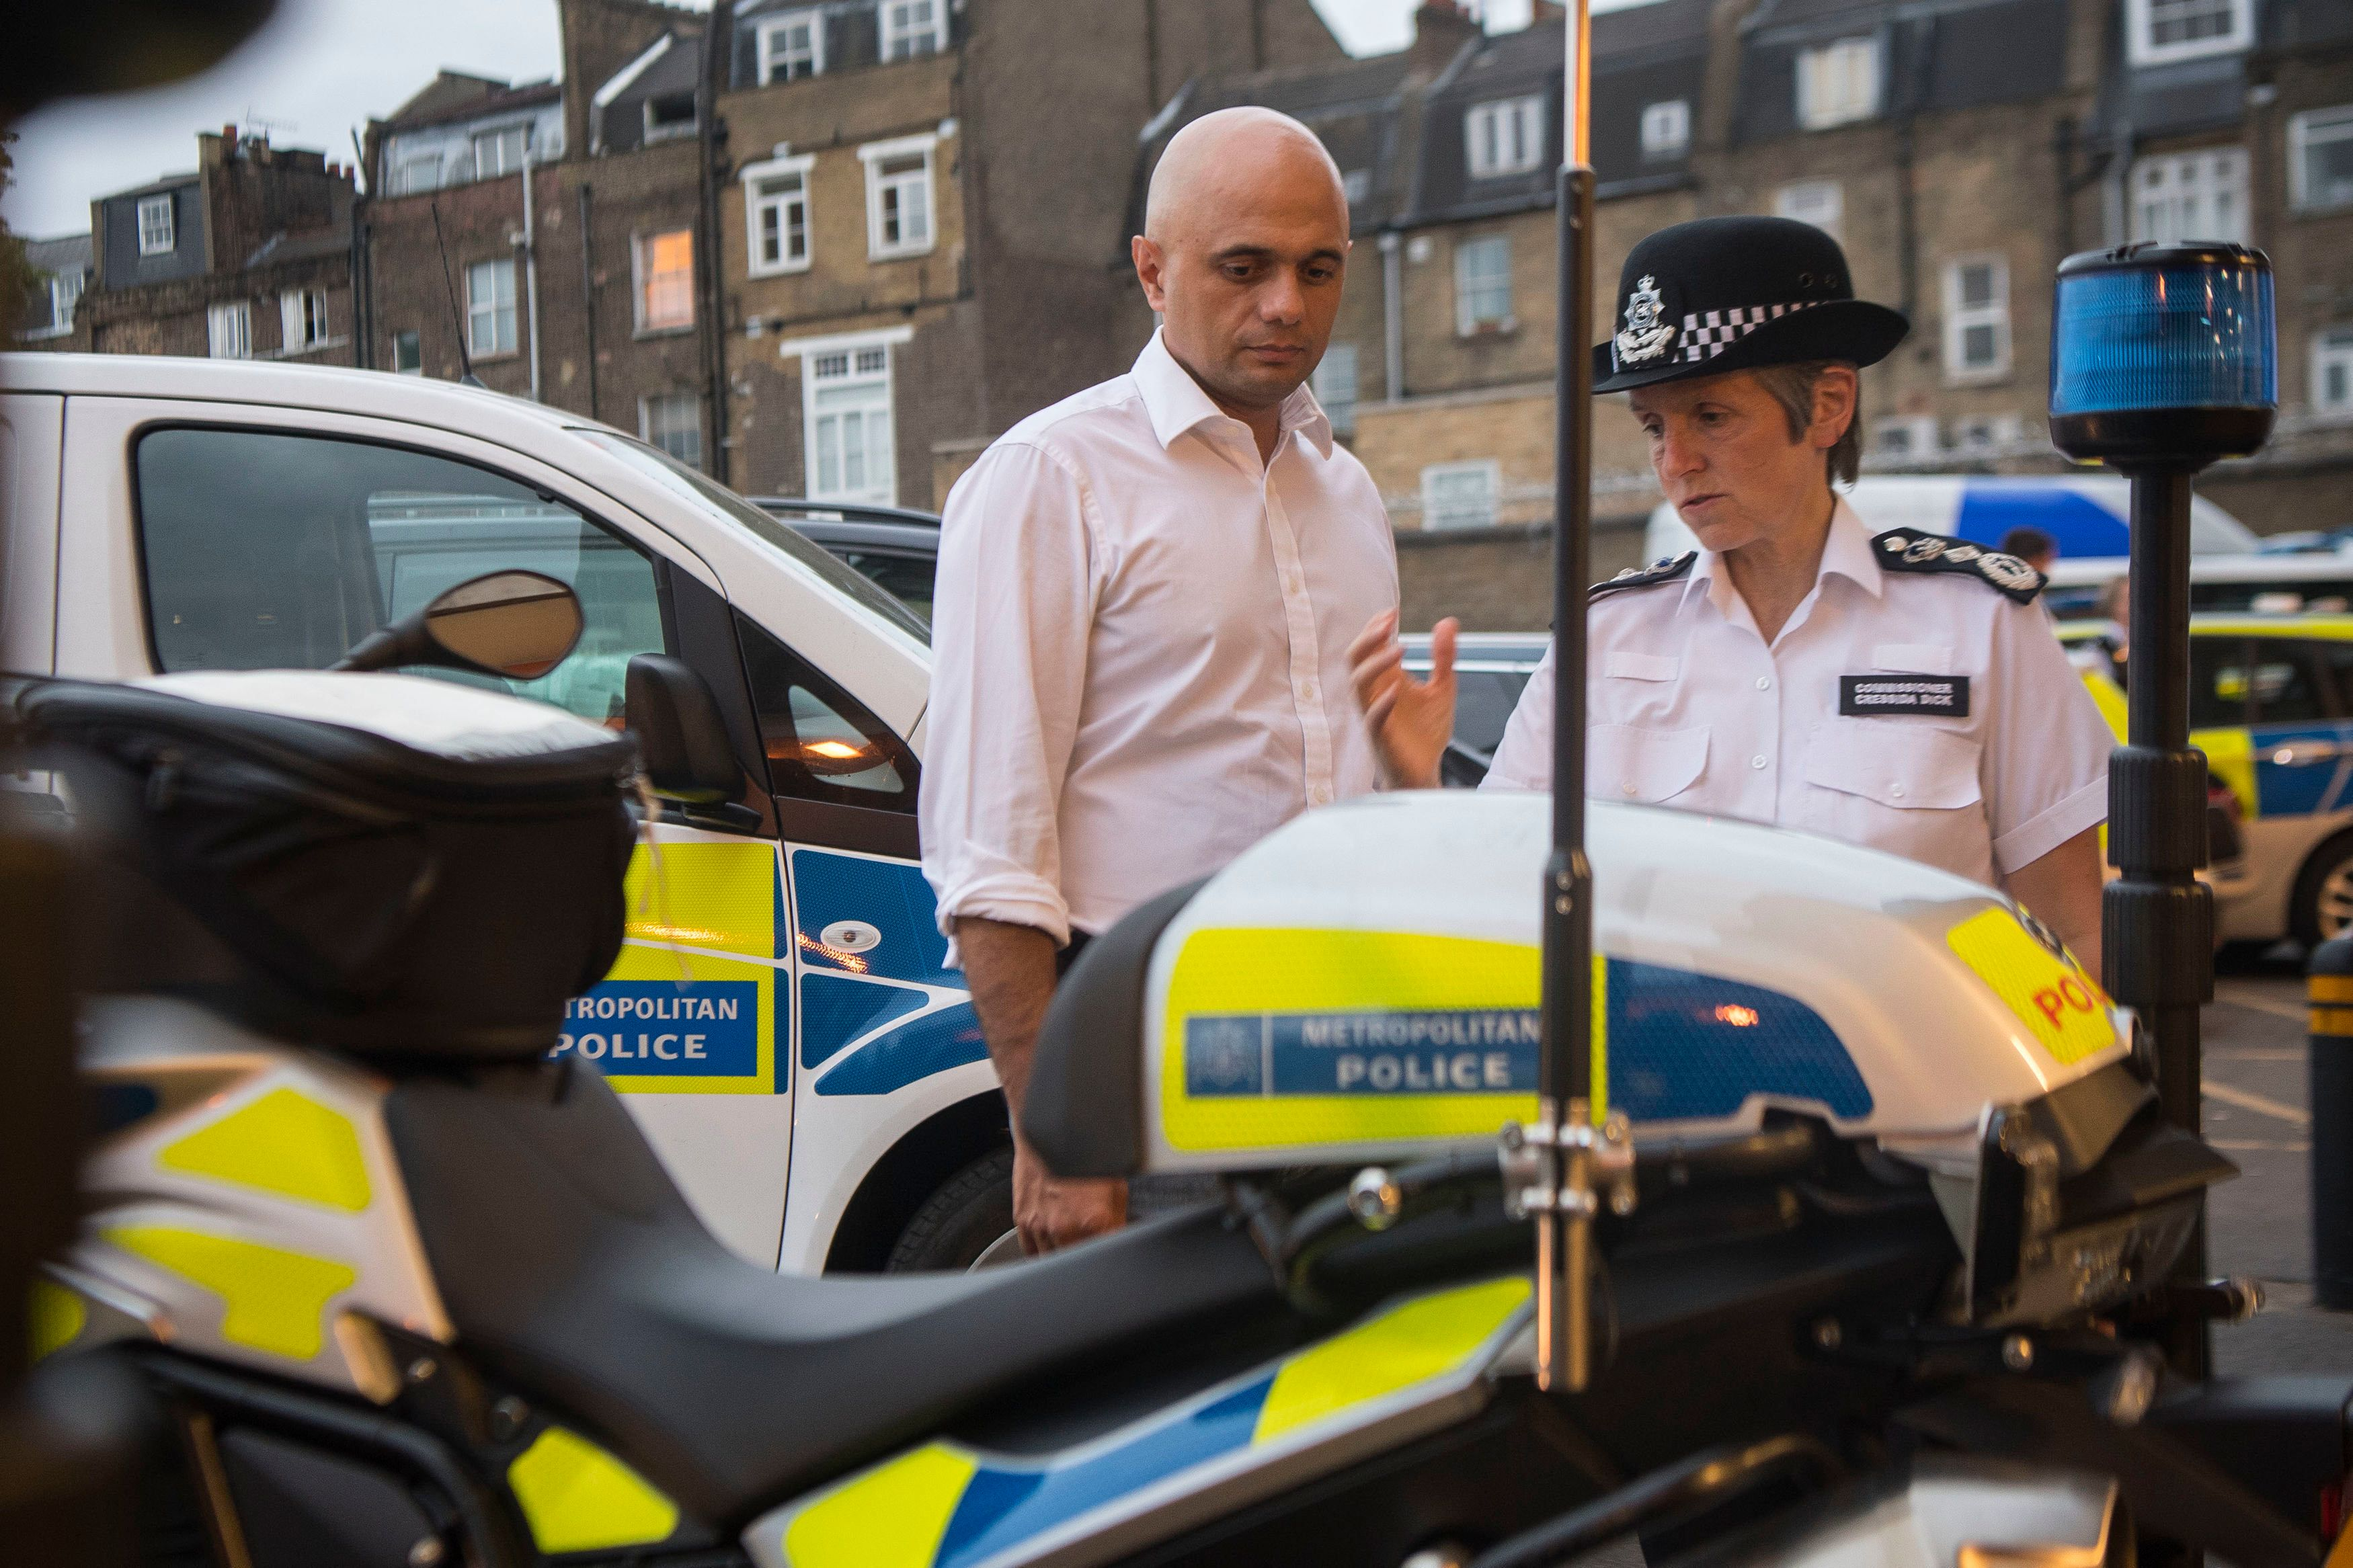 Home Secretary Sajid Javid has called on Met Commissioner Cressida Dick to step up the force's response...